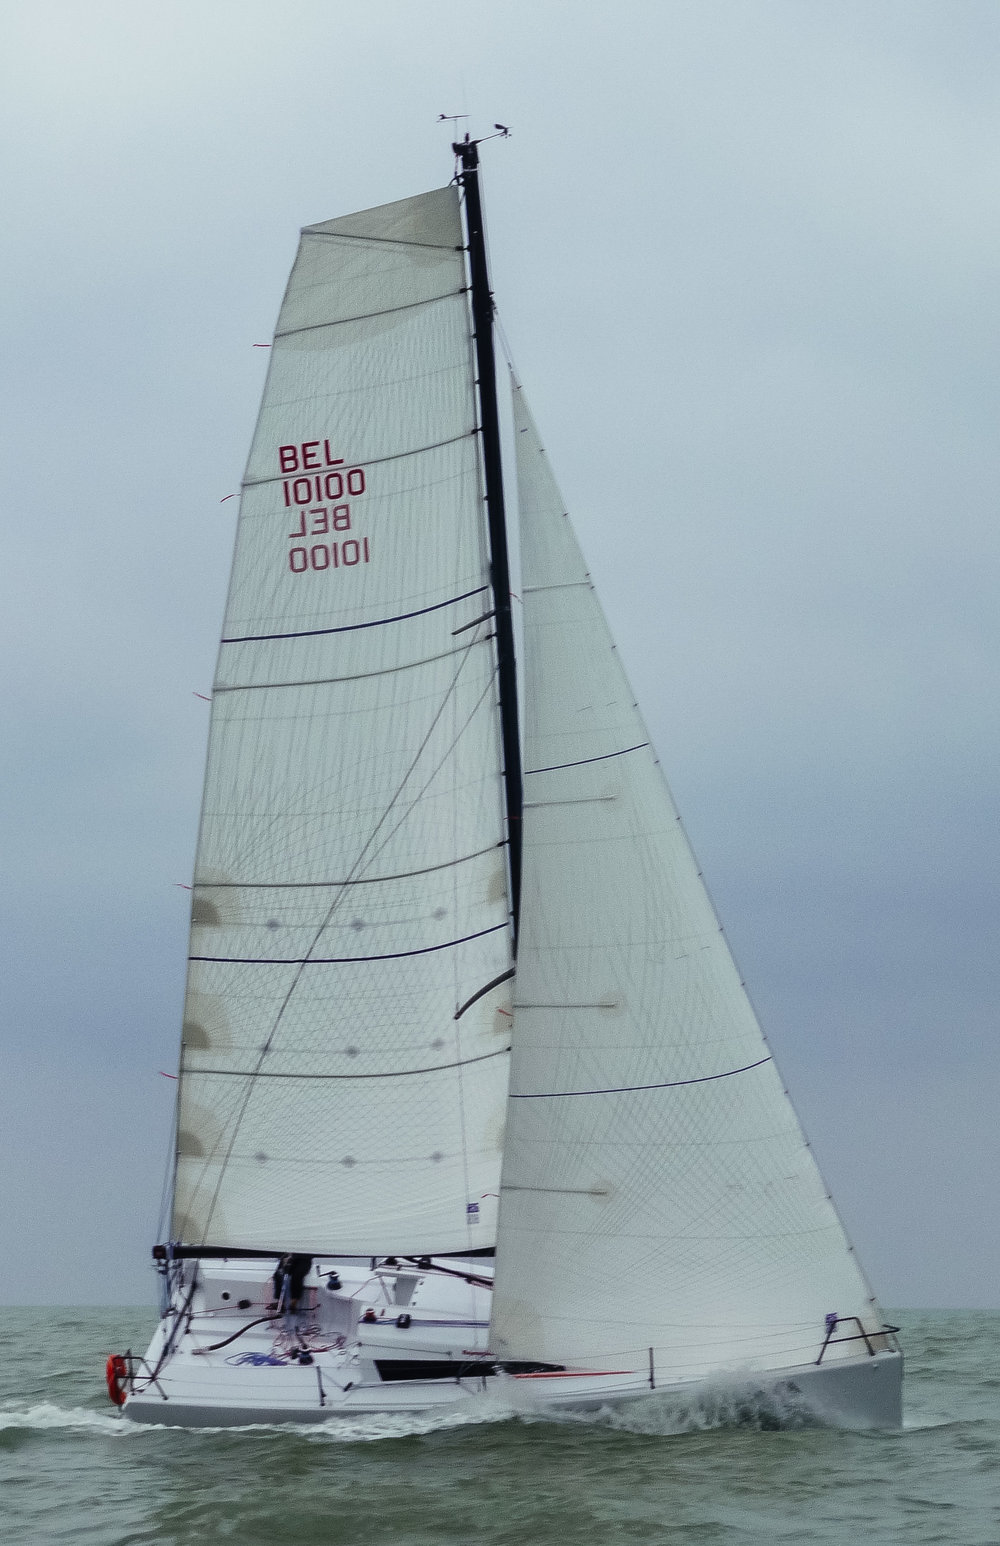 UK Sailmakers Square Top Mainsail 6 Nacira 9.50 Lamia.jpg